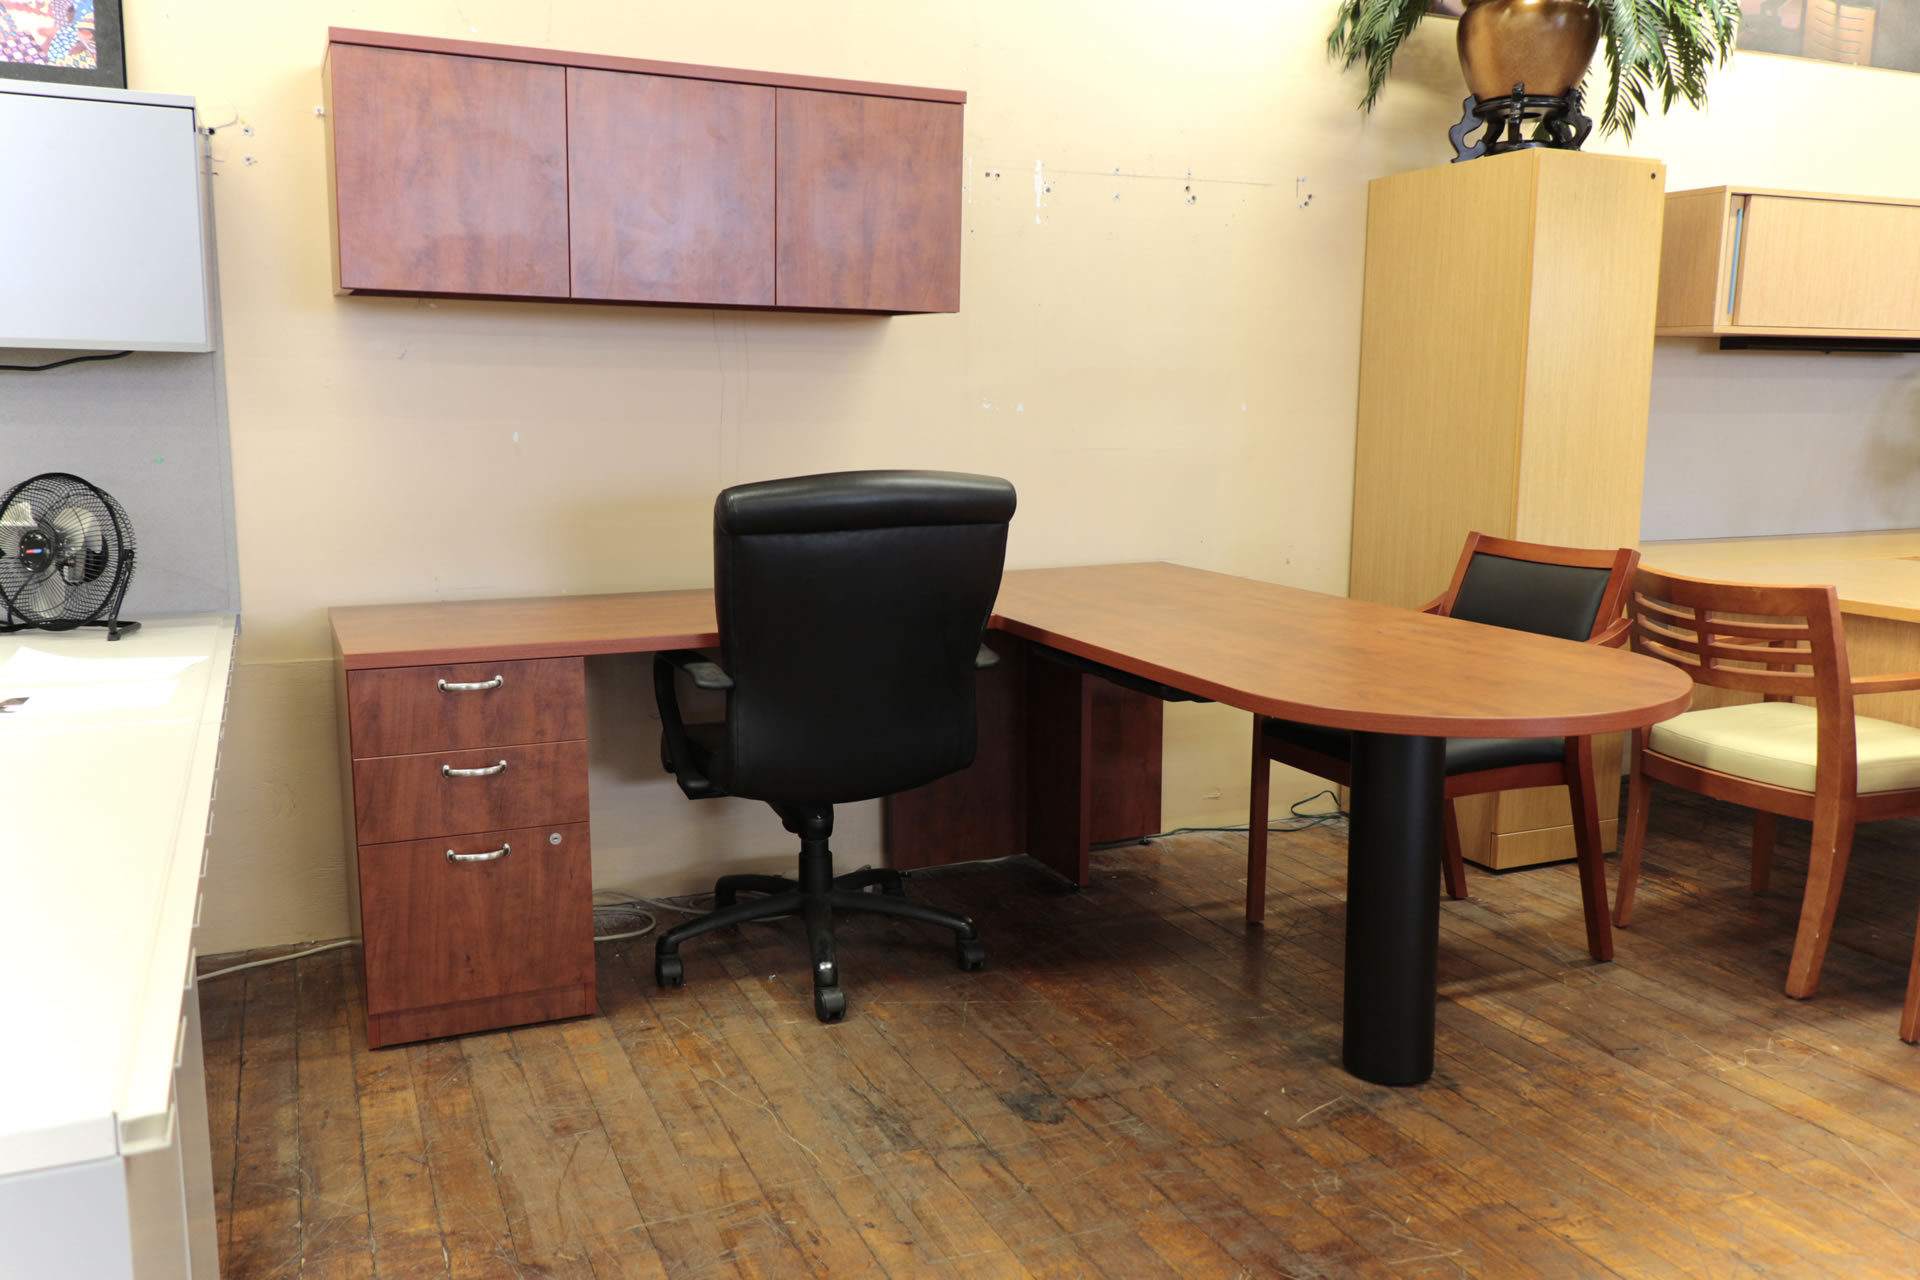 peartreeofficefurniture_peartreeofficefurniture_mg_4699.jpg